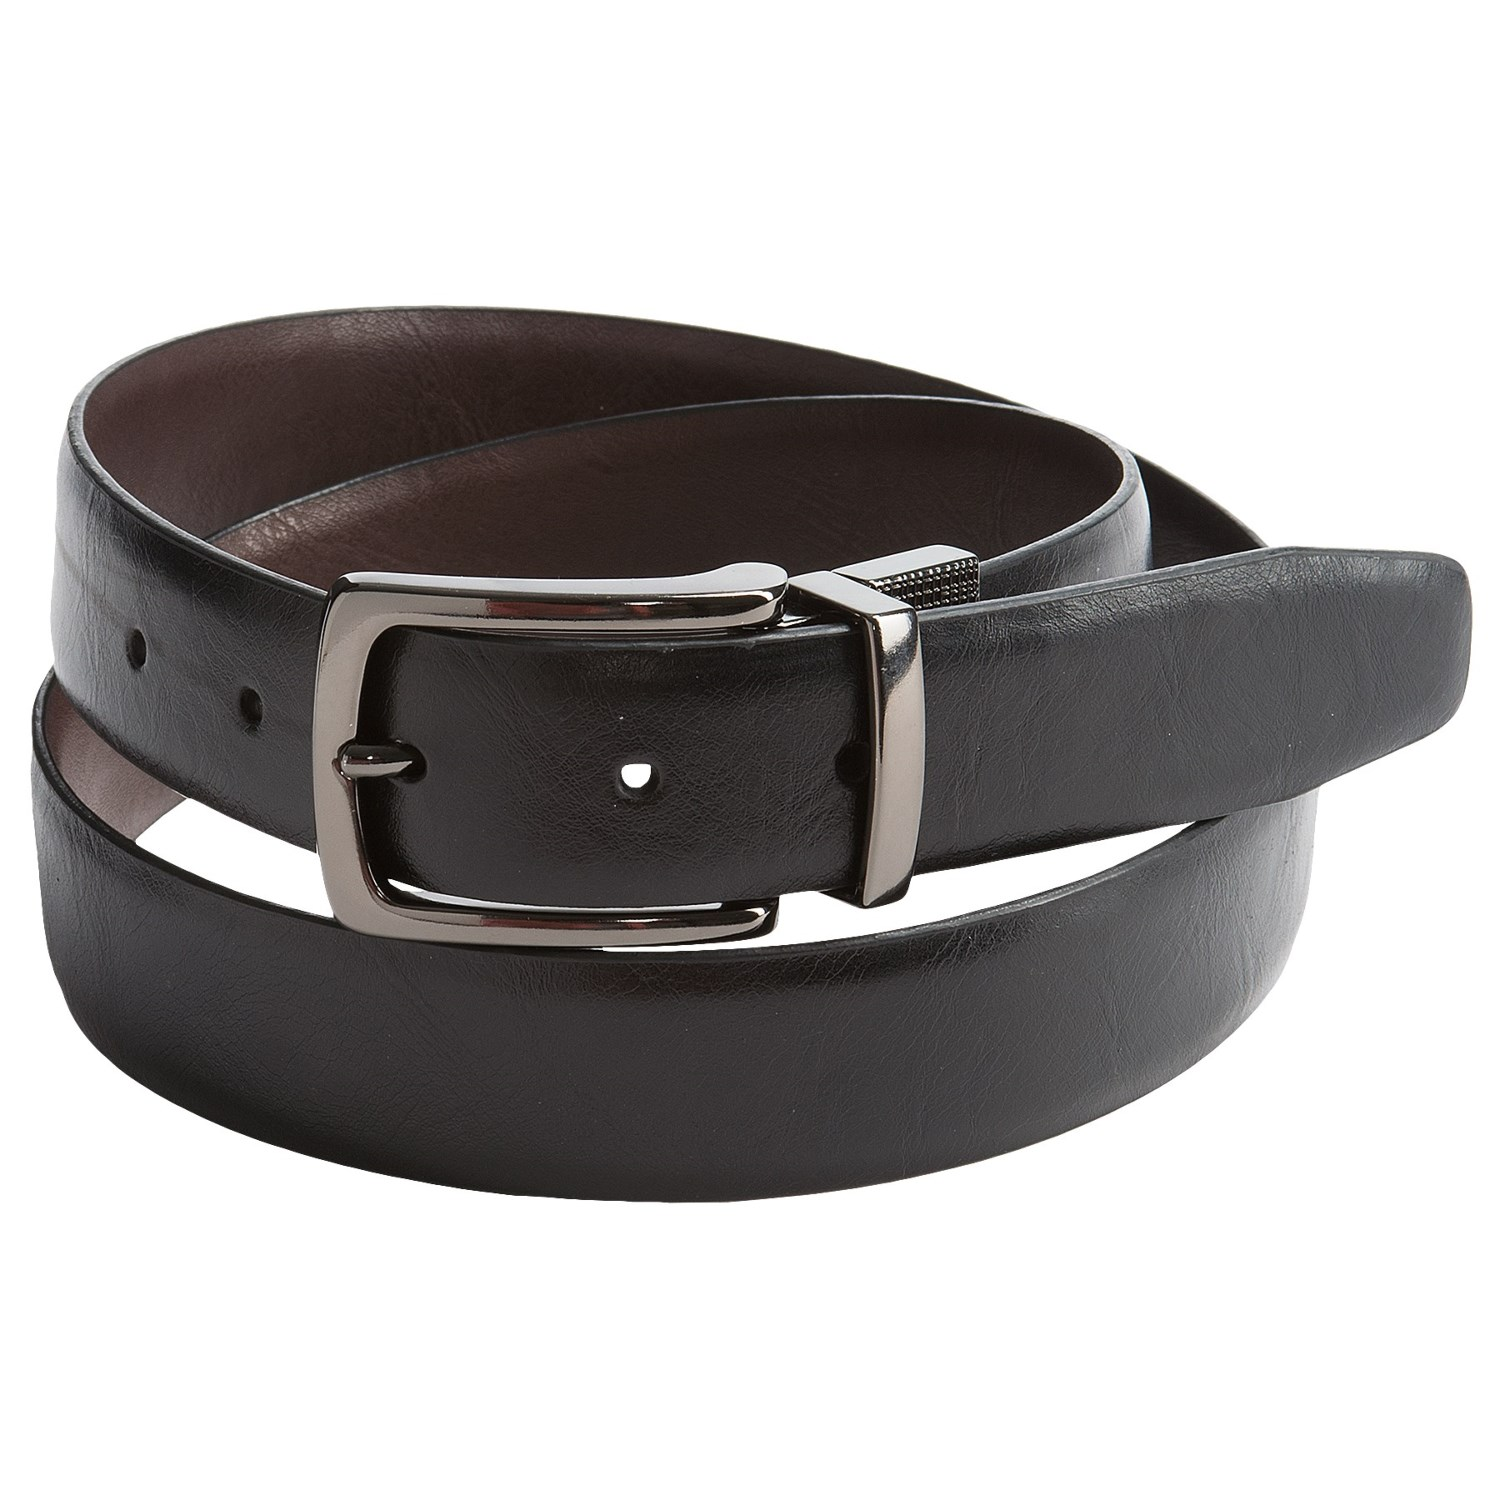 Shop the Latest Collection of Reversible Belts & Suspenders for Men Online at hereufilbk.gq FREE SHIPPING AVAILABLE!